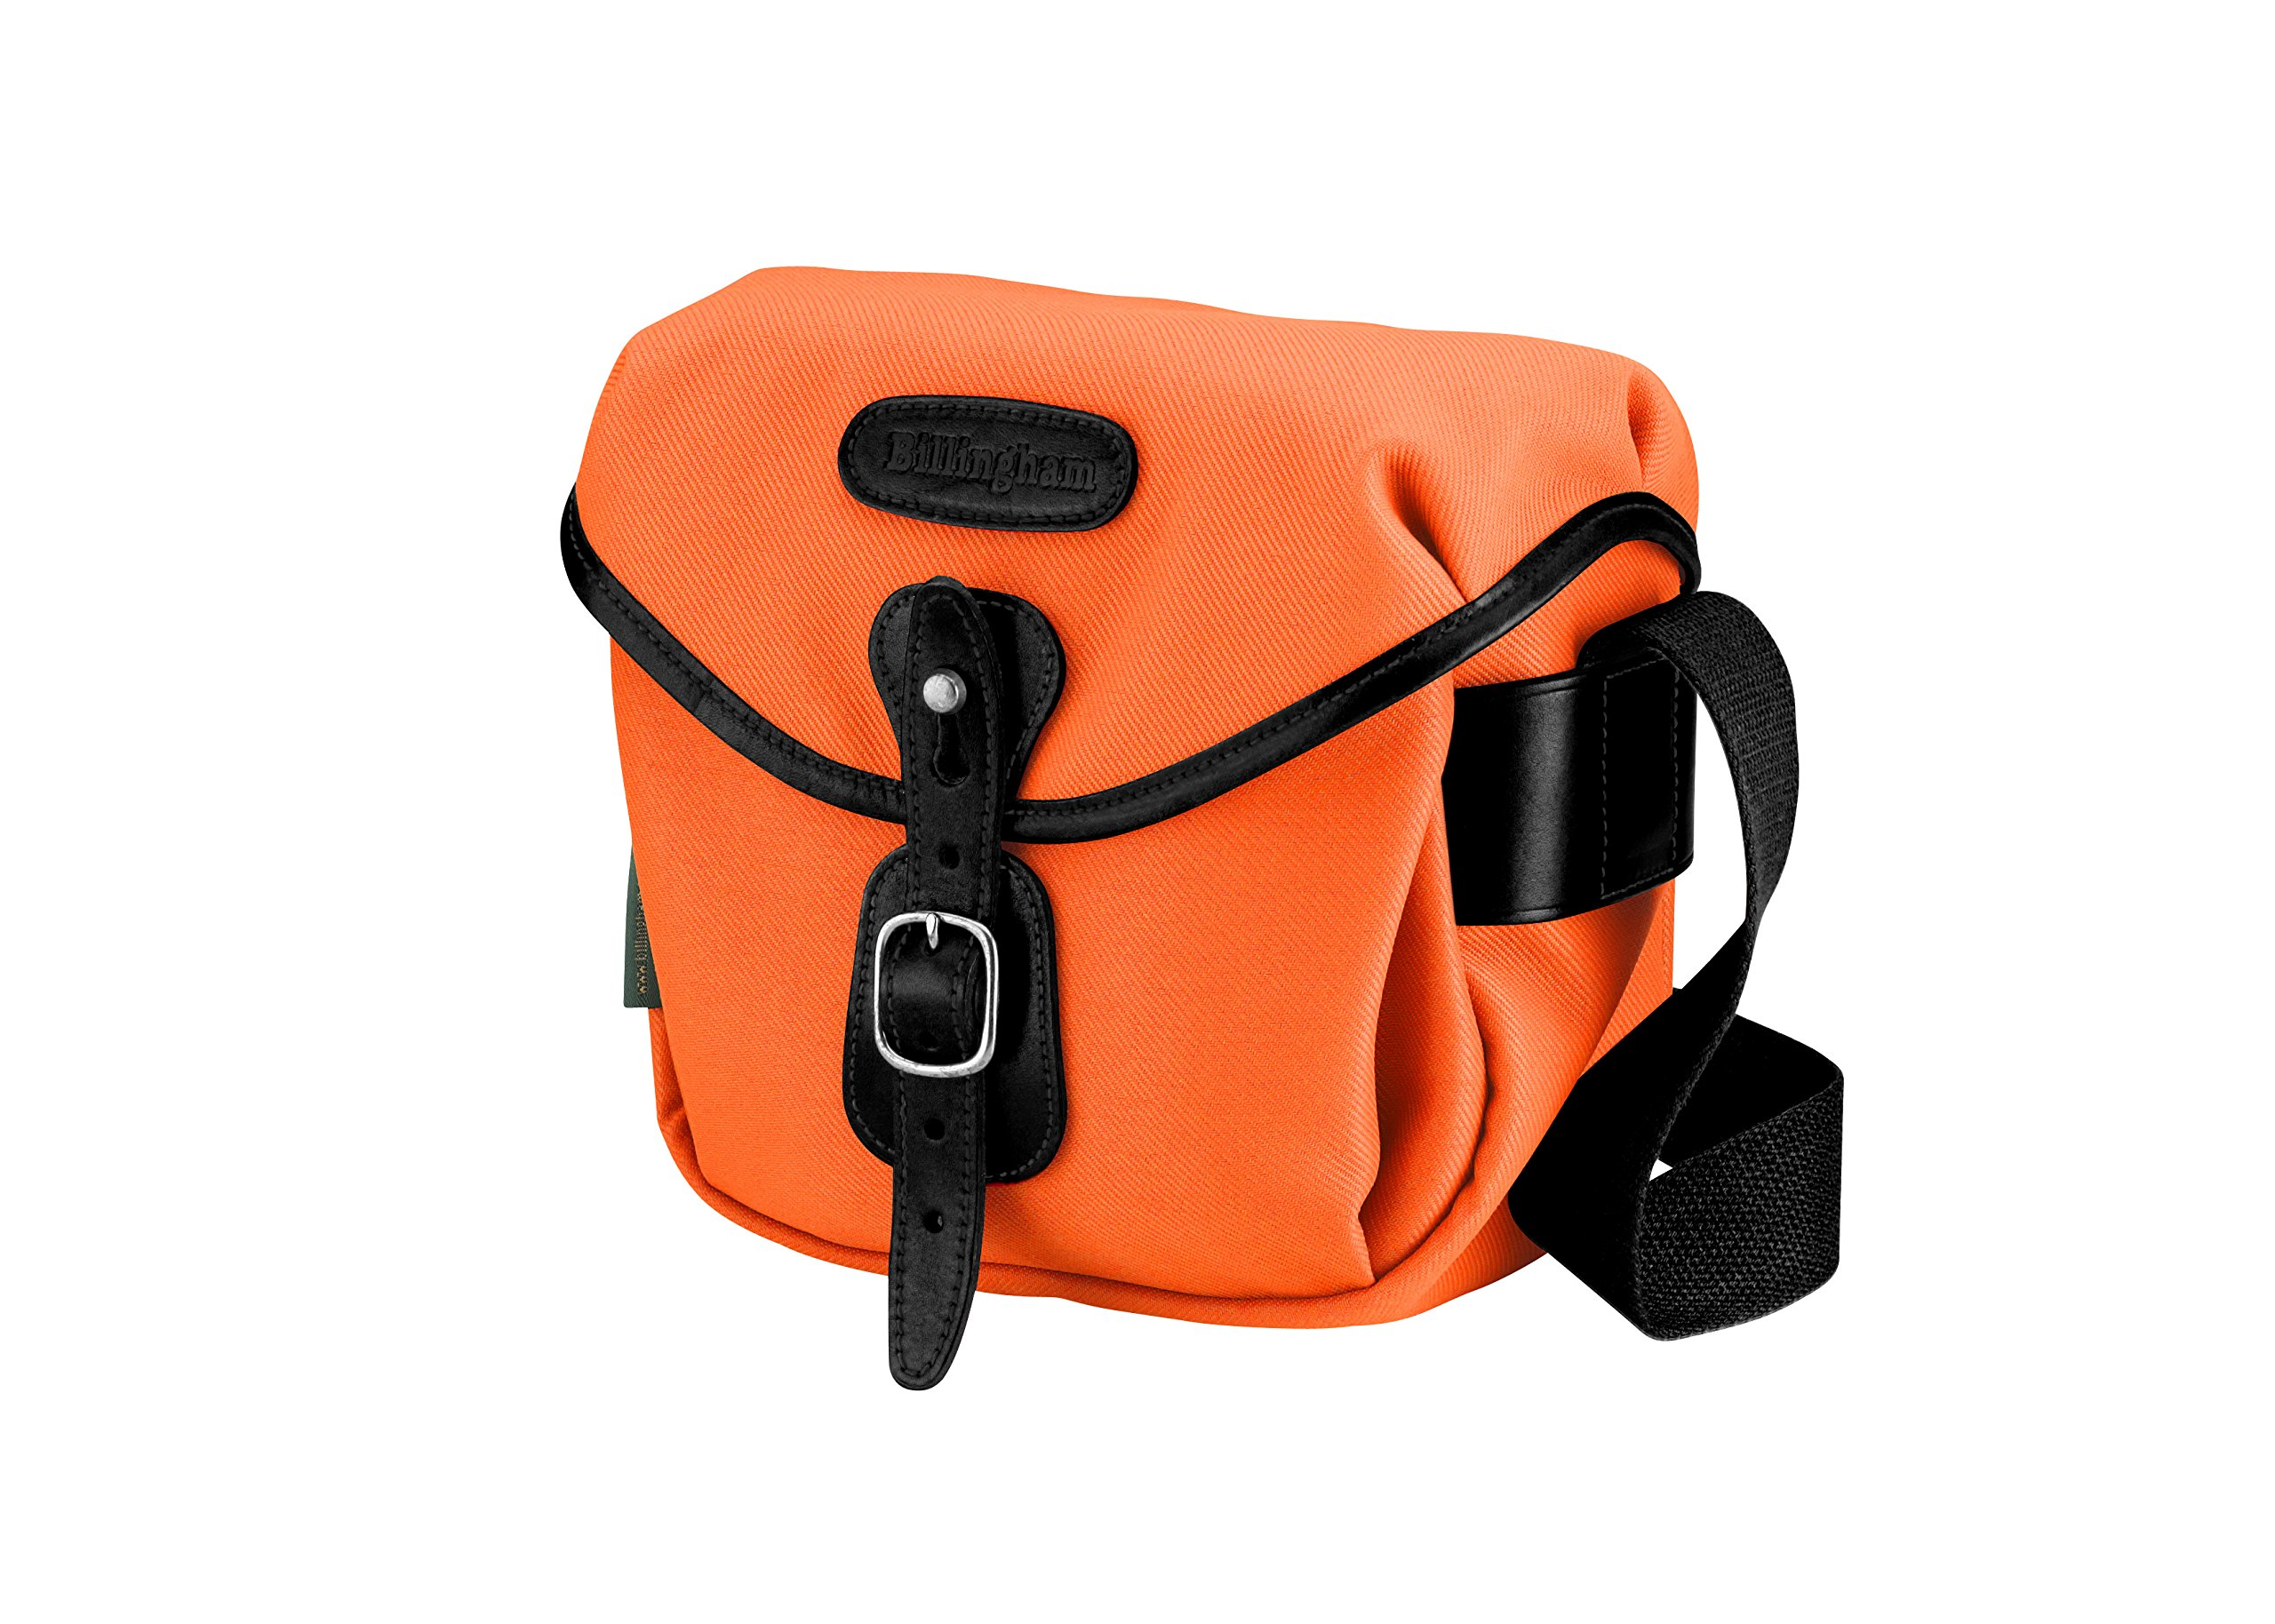 Billingham Digital Hadley Orange